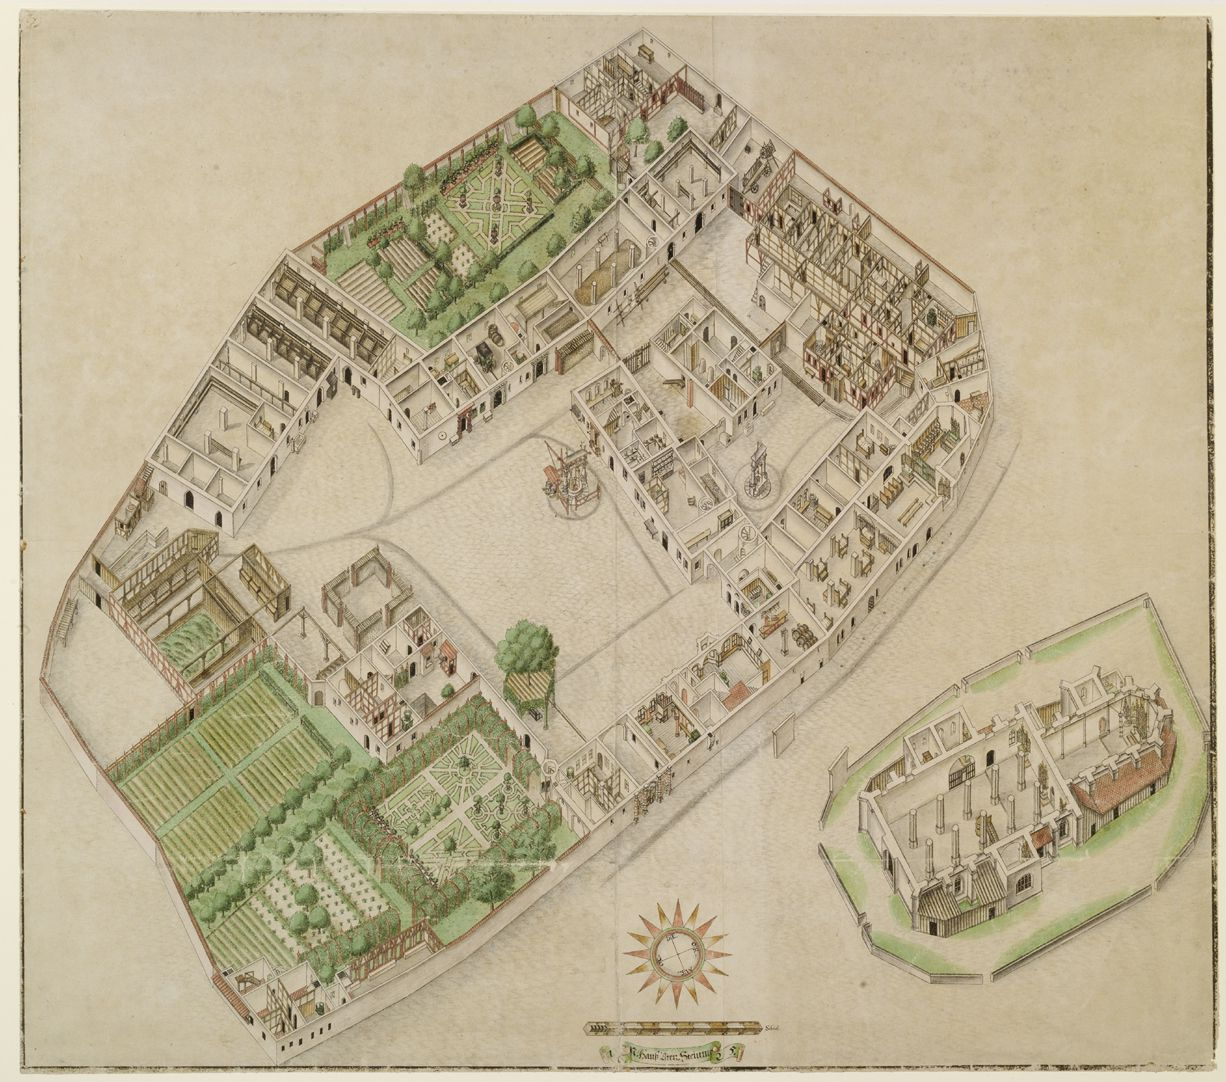 Isometric Picture of the whole plan of the German House in Nuremberg with view into the ground floors General view: at the bottom flower and kitchen garden (the western area was the cultivated part), at the top the so called gold-workers´ garden, on the right of that the old hospice houses and tenements